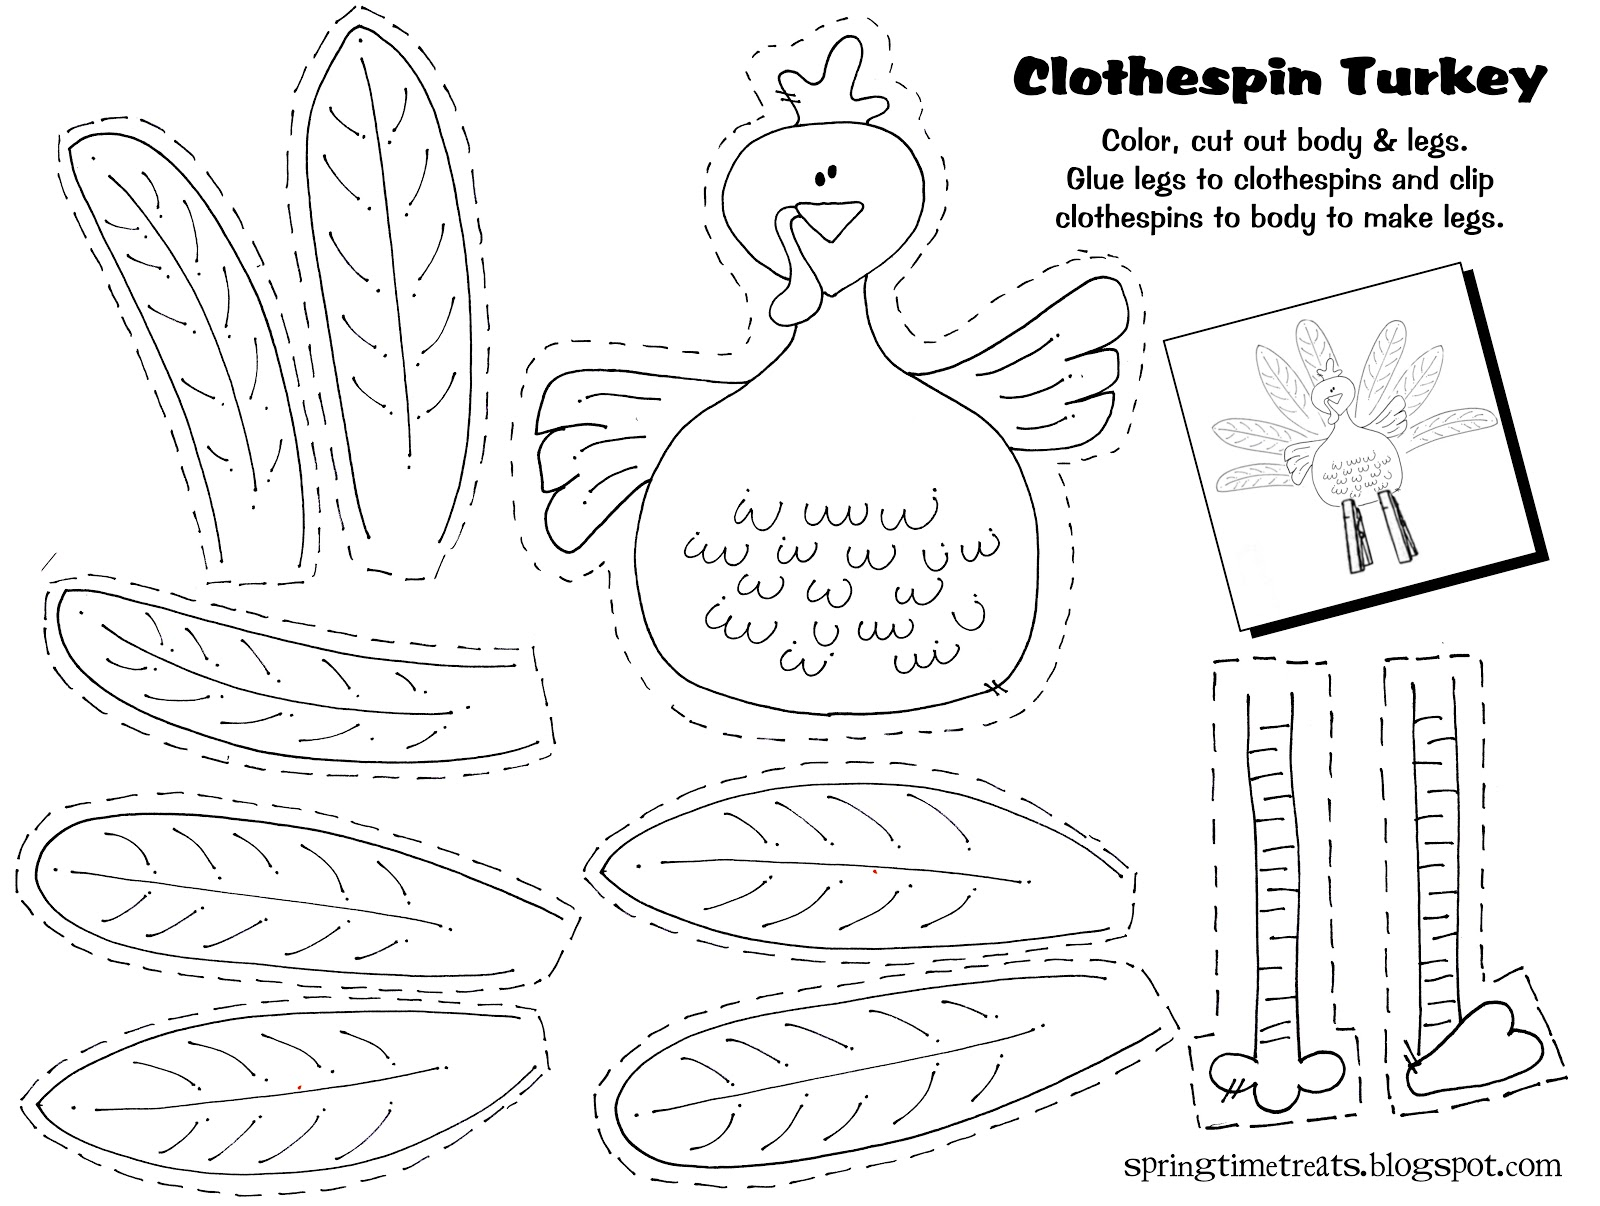 Spring Time Treats Clothespin Turkey